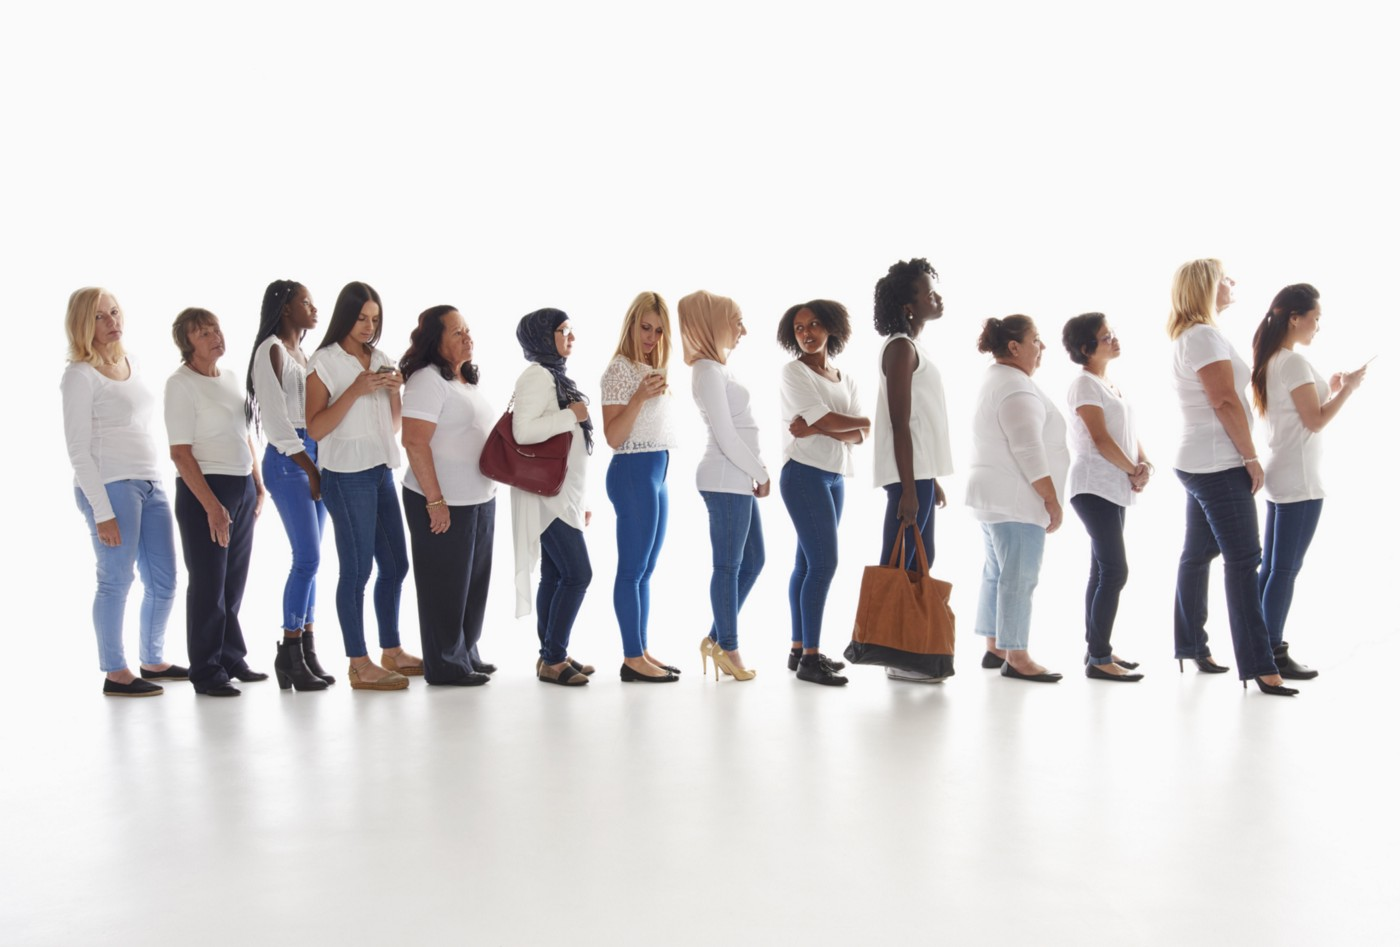 A diverse group of women standing in line. They are wearing different styles of blue denim jeans and white shirts.